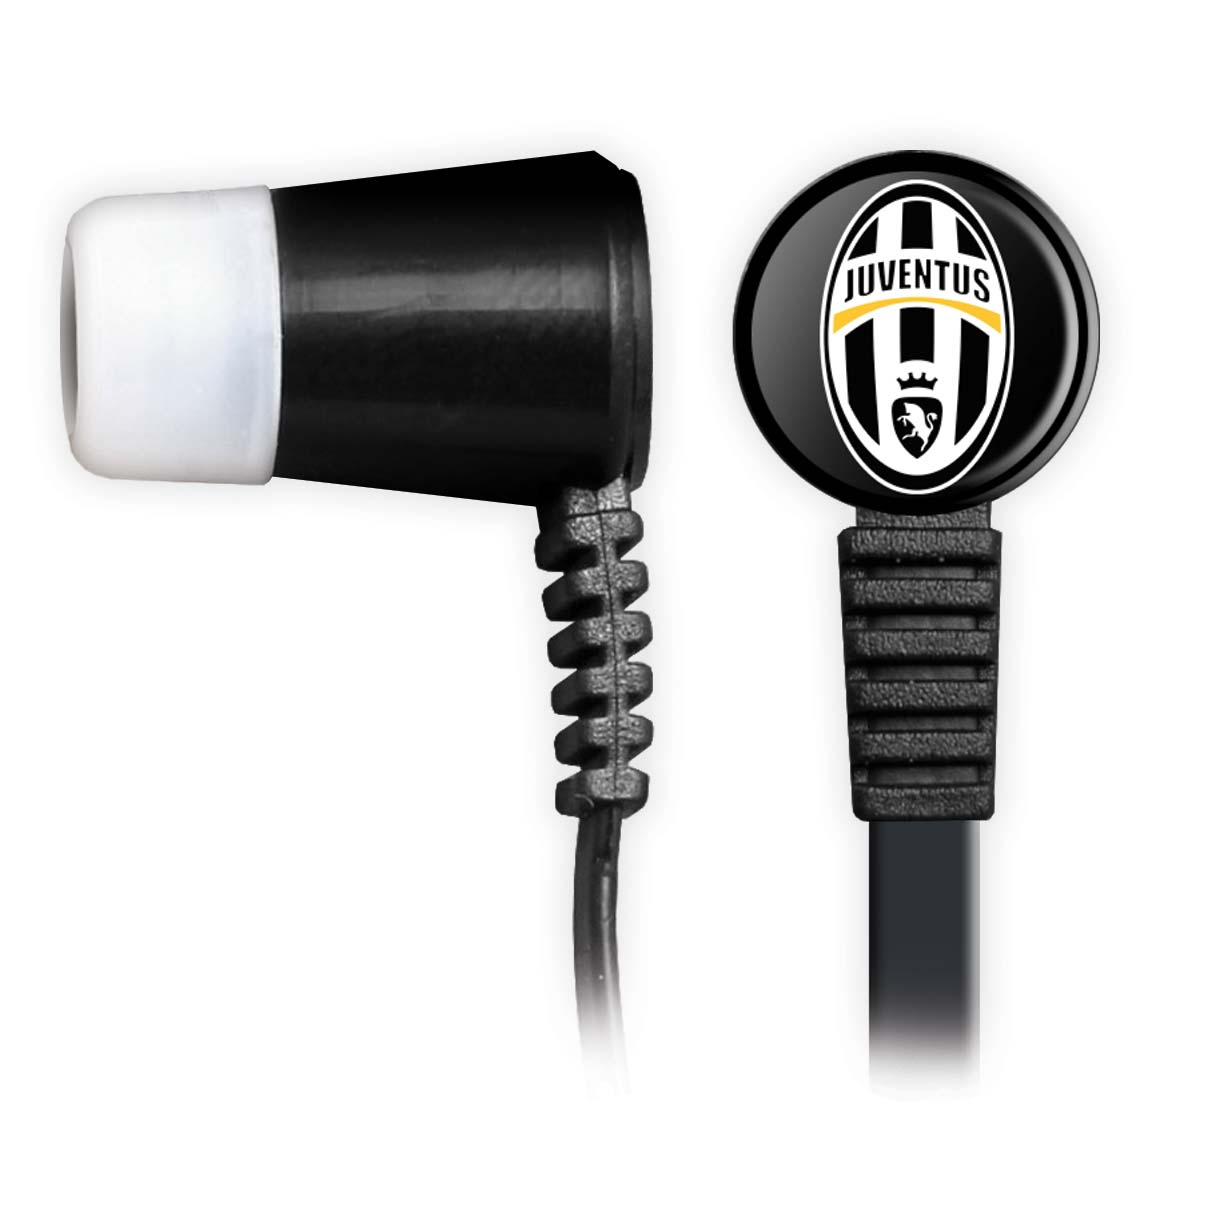 Juventuf FC Earbuds with remote and mic